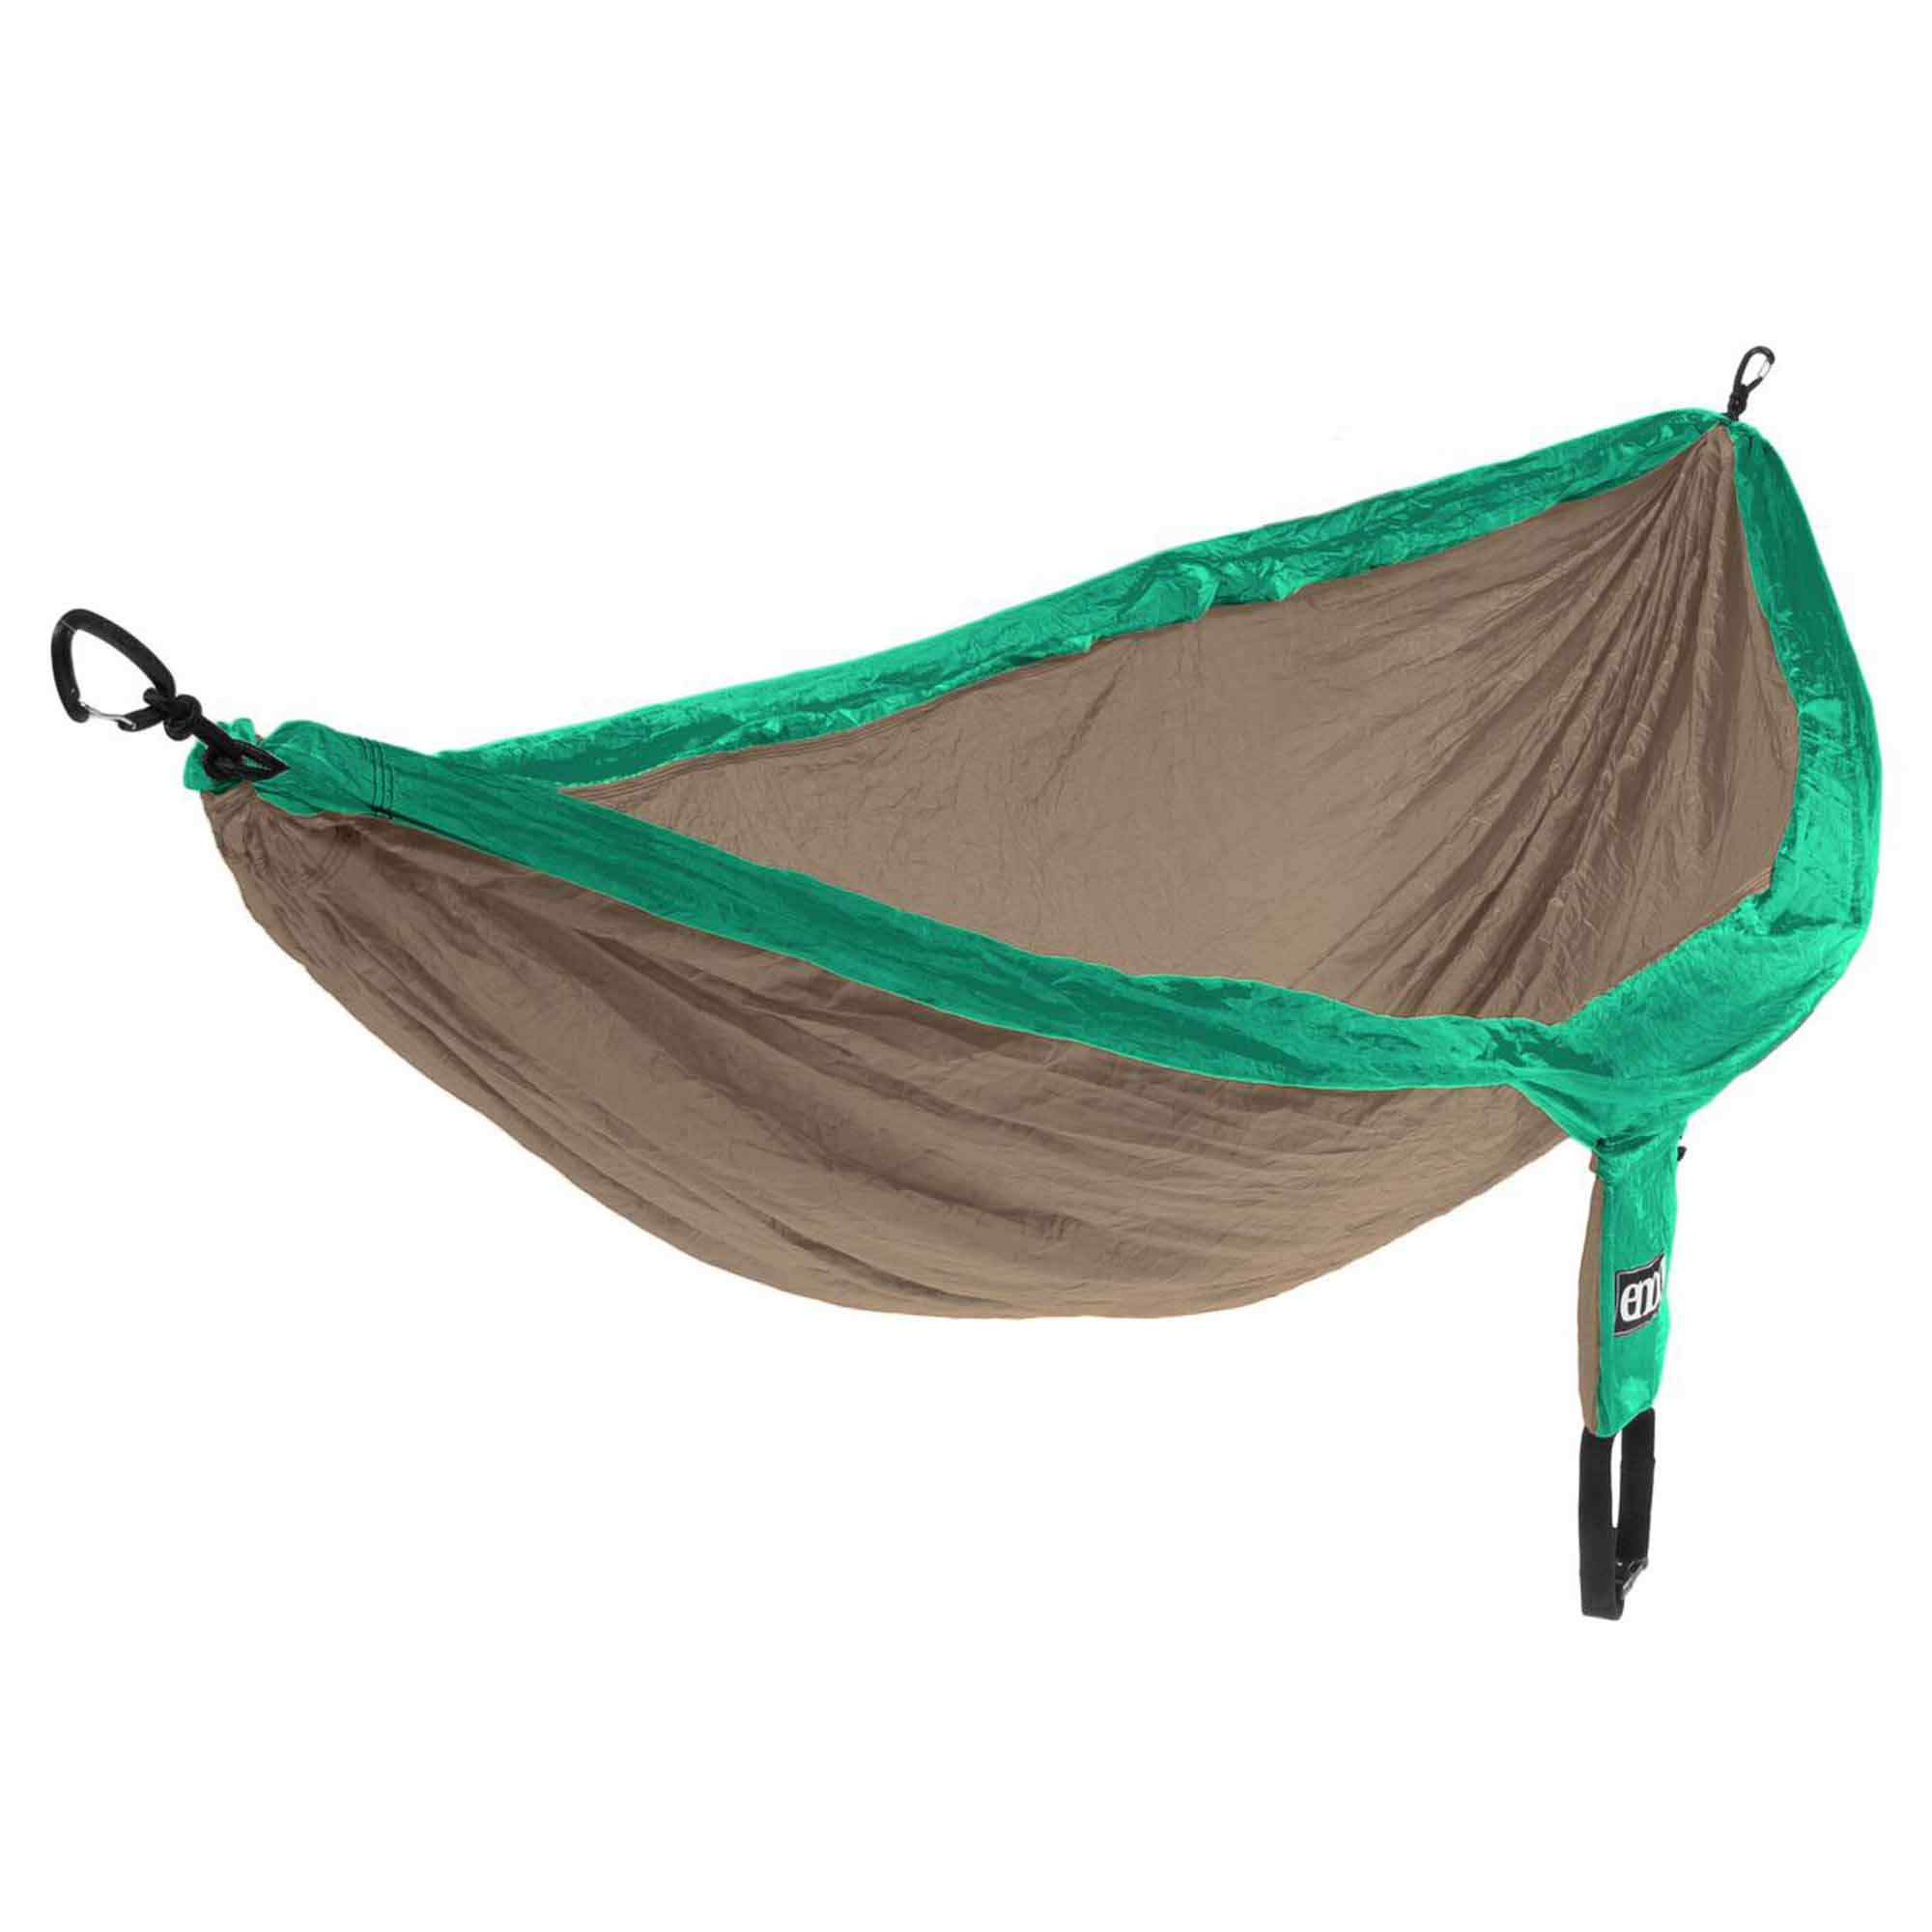 The 5 Best Hammock Stands for an Eno DoubleNest Hammock in